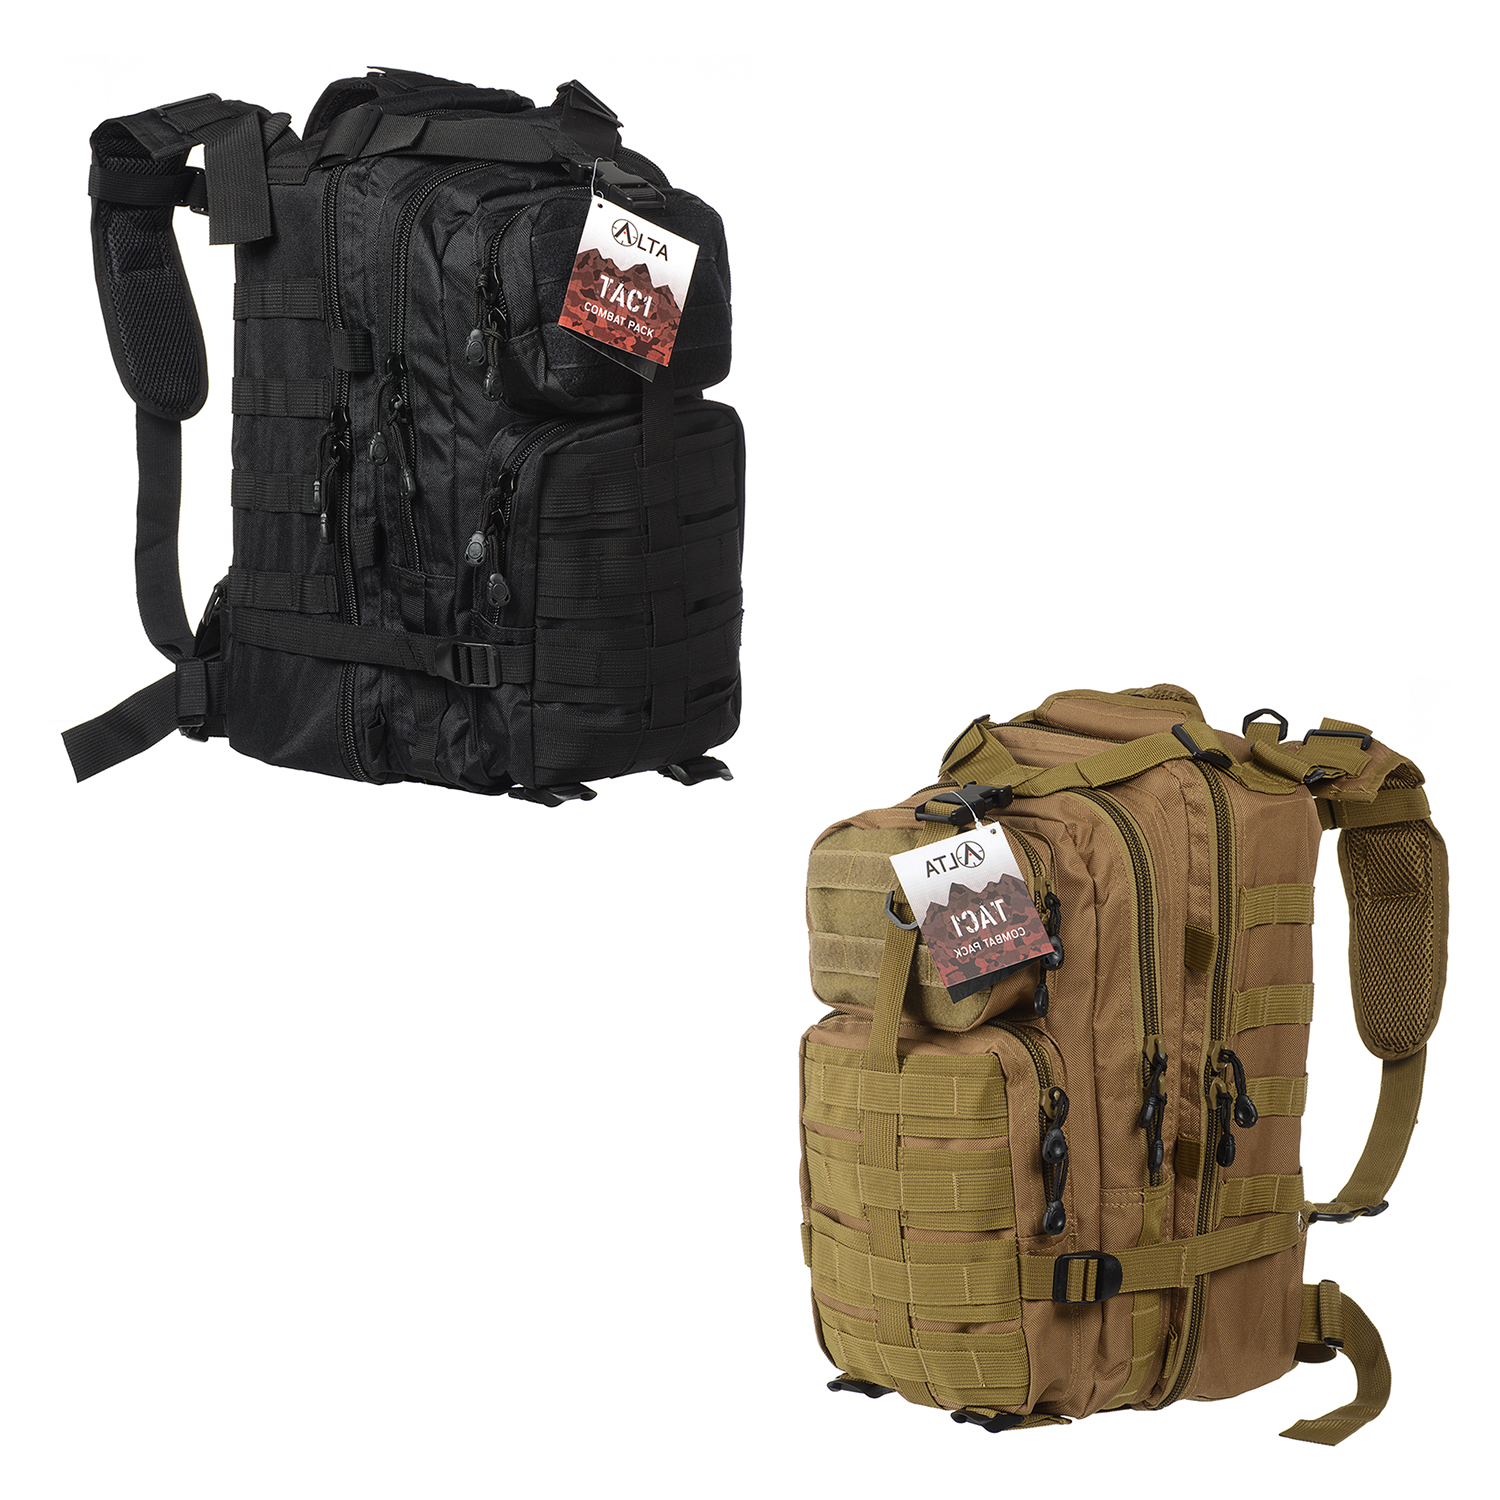 TAC1 Military Tactical Large Army 3 Day Assault Pack MOLLE Outdoor Bug Out Bag Backpacks for Hiking Camping Hunting Trekking